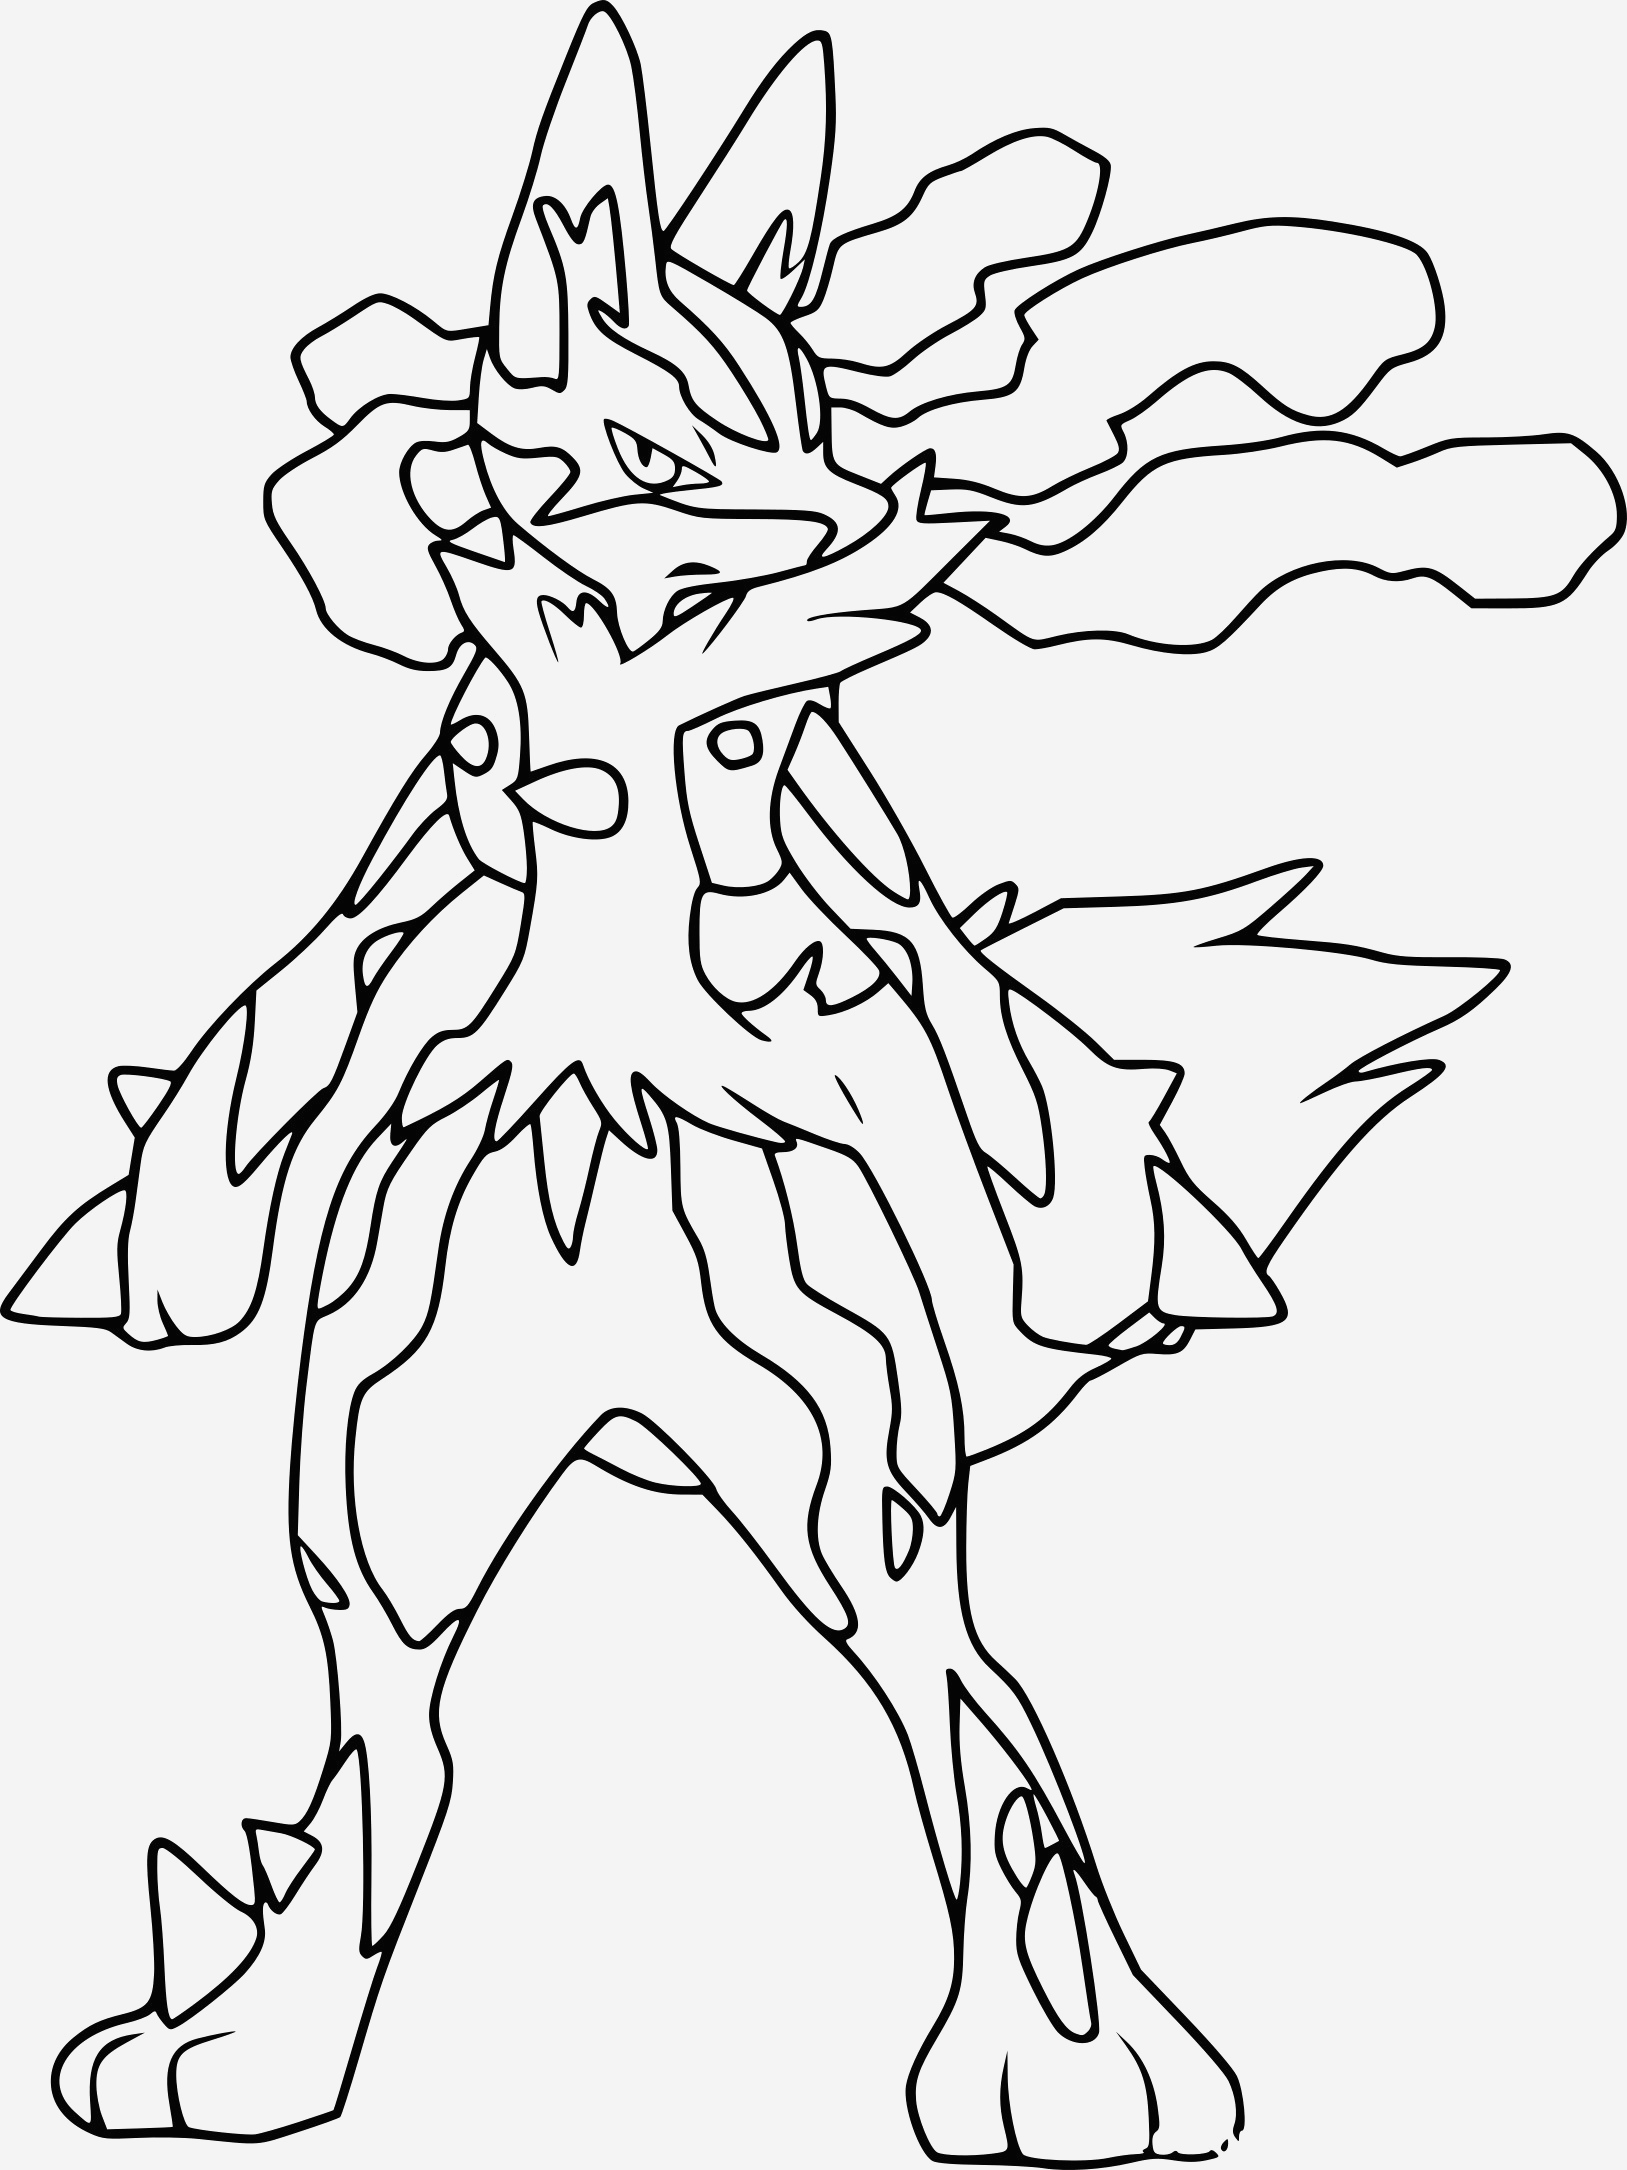 Coloriage Pokemon à Imprimer Fresh 159 Dessins De Coloriage Pokemon   Imprimer Of Coloriage Pokemon à Imprimer